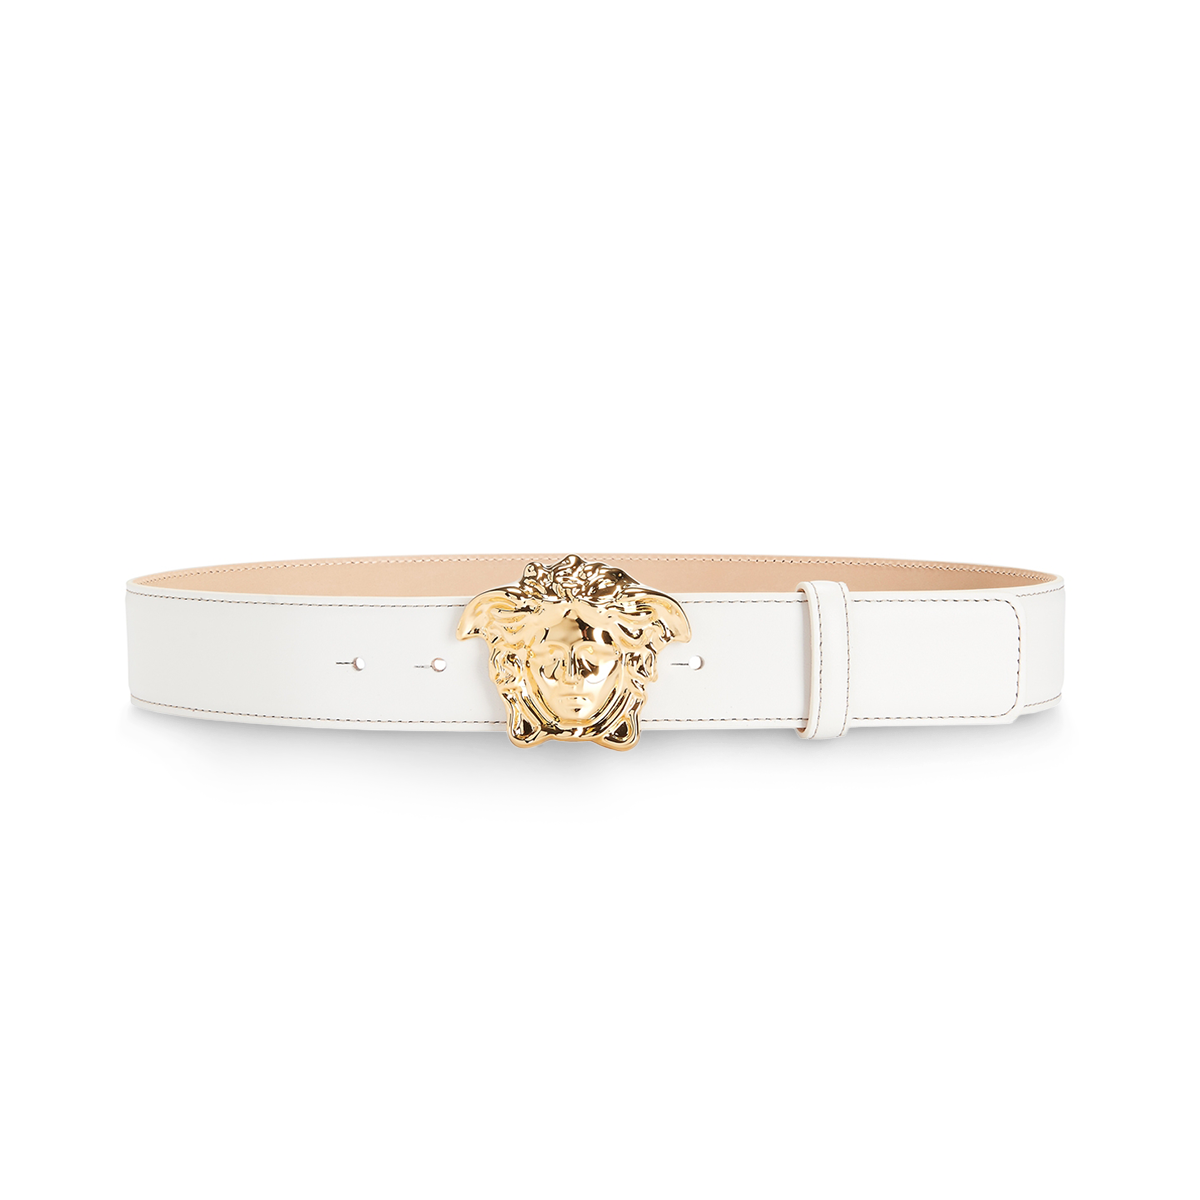 553df52530 Powerful white. Find more #Versace Men's belts on versace.com ...